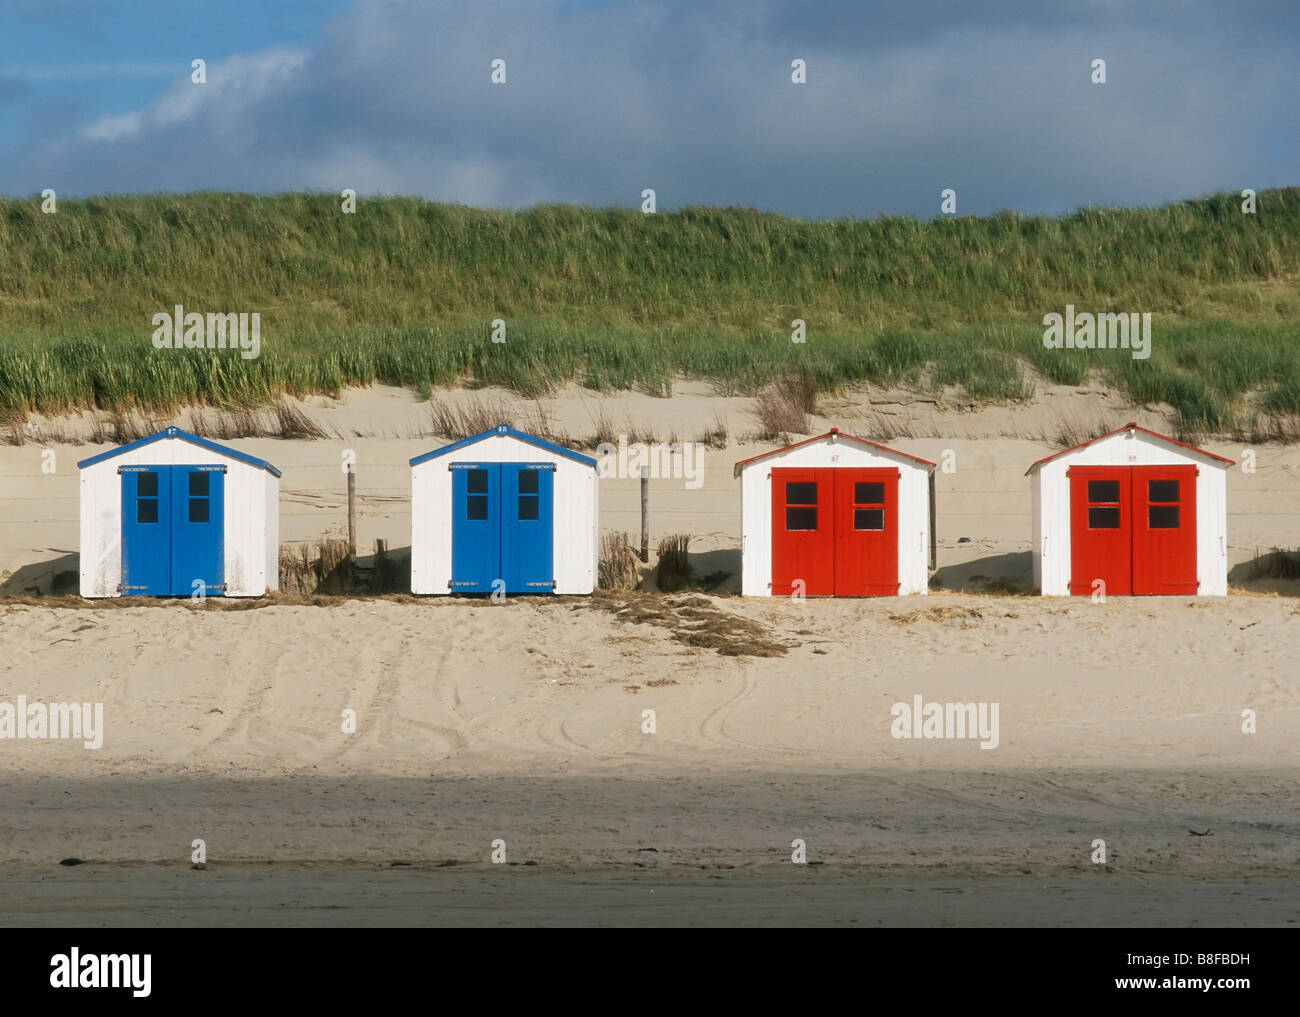 Blue and red boat houses at beach, Texel island, North Holland, Netherlands - Stock Image